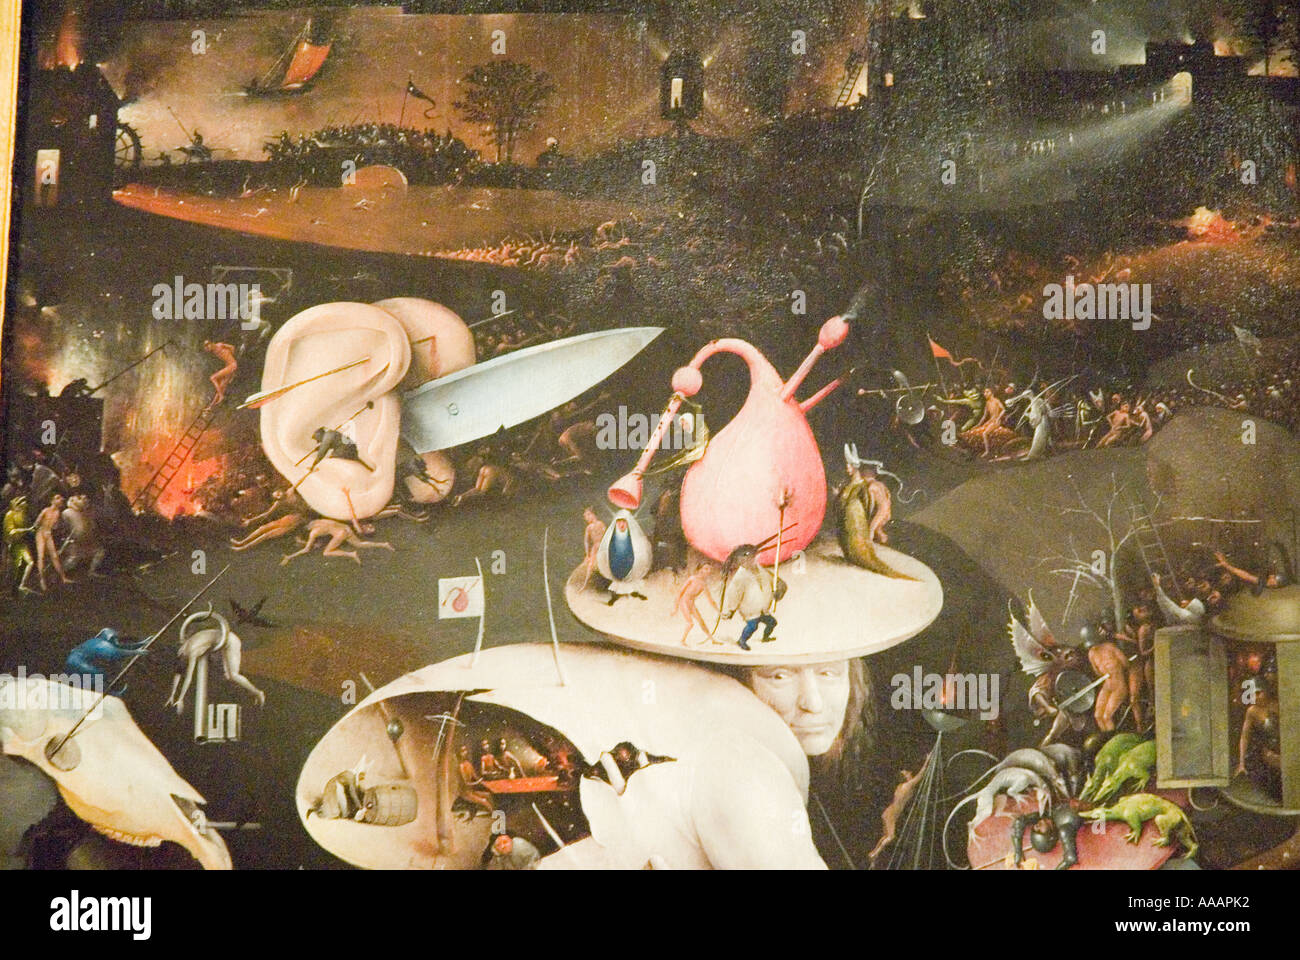 Garden Of Earthly Delights Painting By Hieronymus Bosch